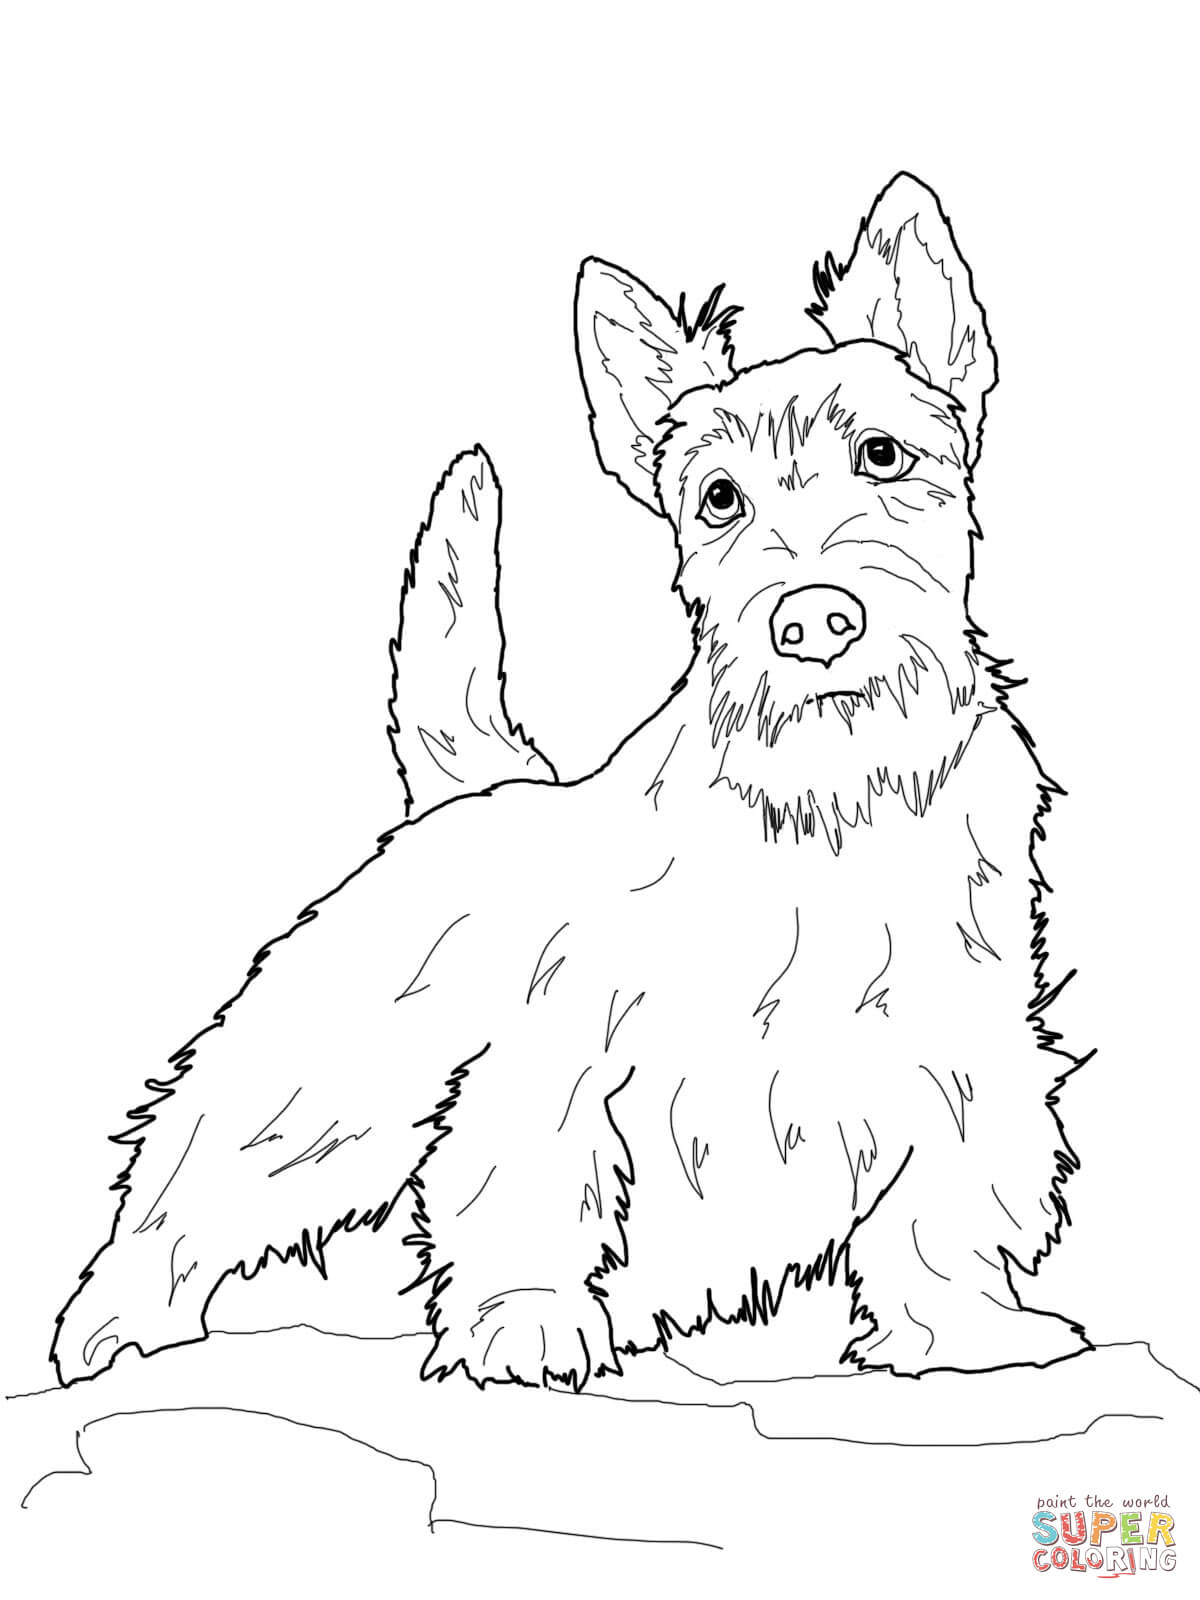 Dibujo De Terrier Escoces Para Colorear